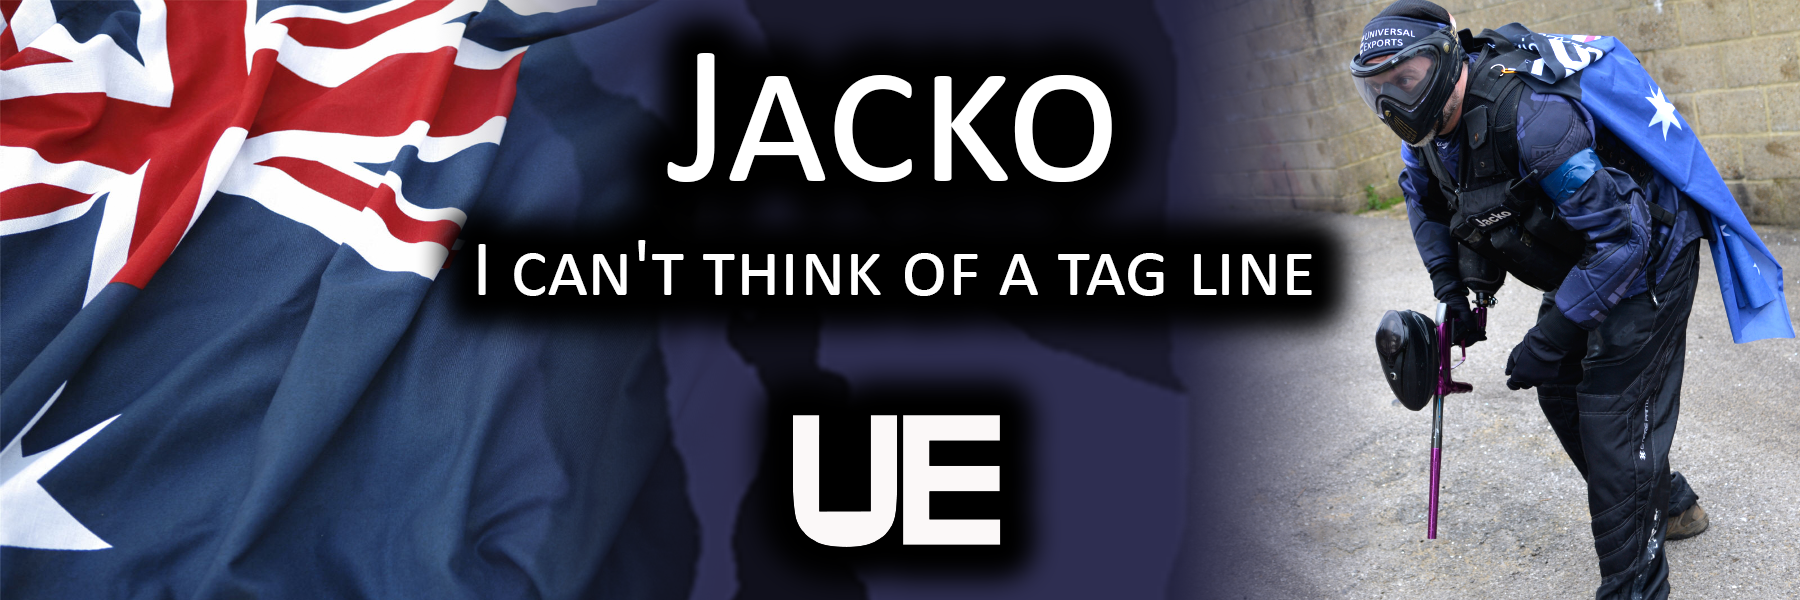 Jacko - I can't think of a tagline